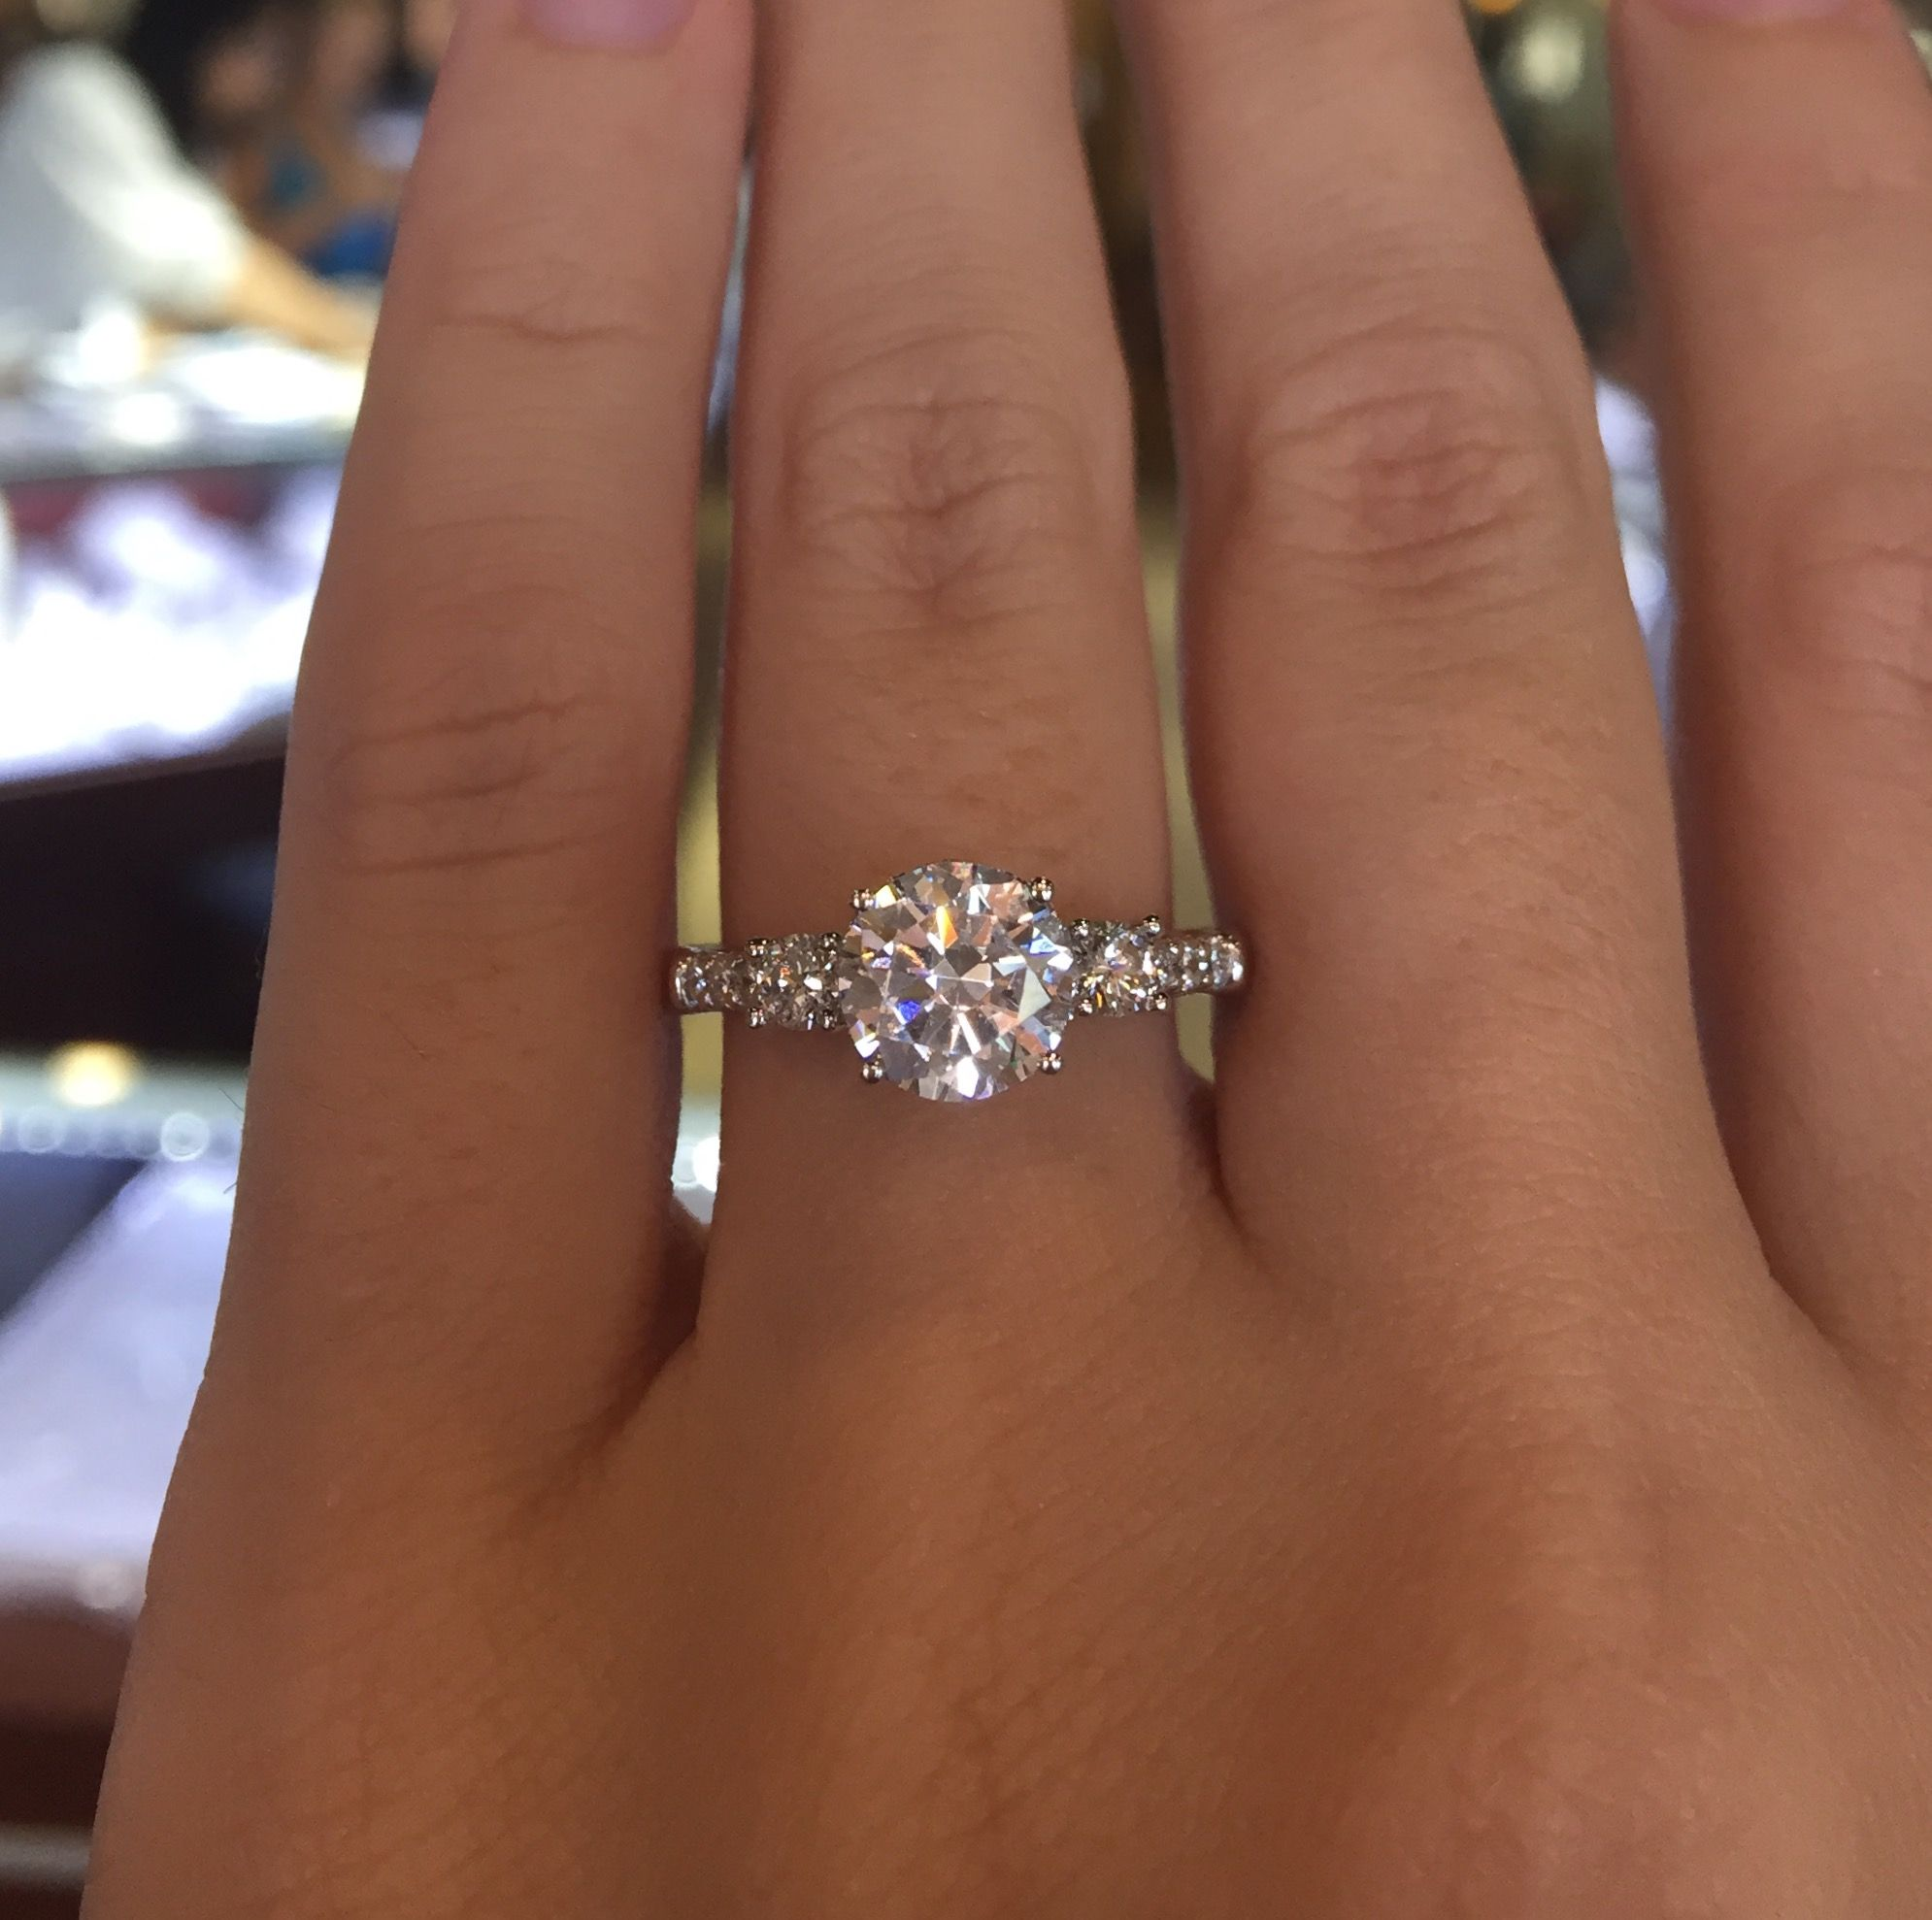 Meet The Most Popular Engagement Ring On Pinterest #weddingrings